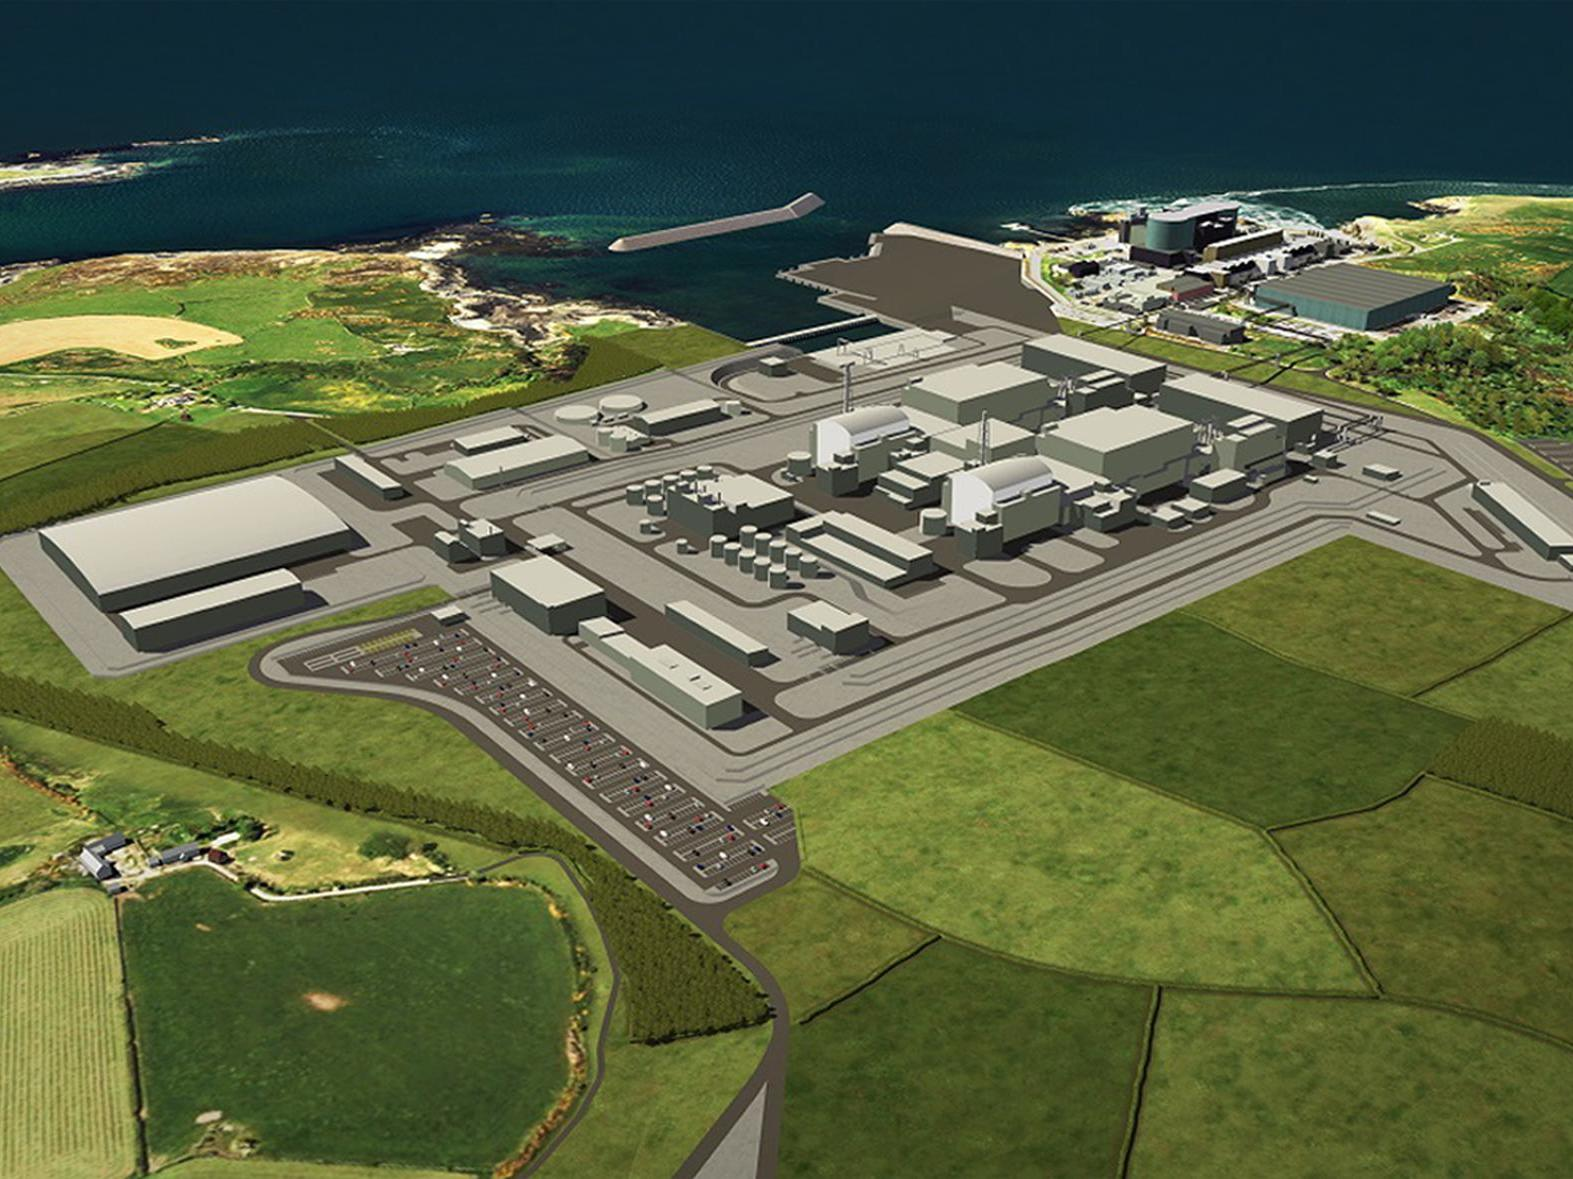 Government signals shift from nuclear power to renewable energy, as Hitachi suspends work on Wylfa plant